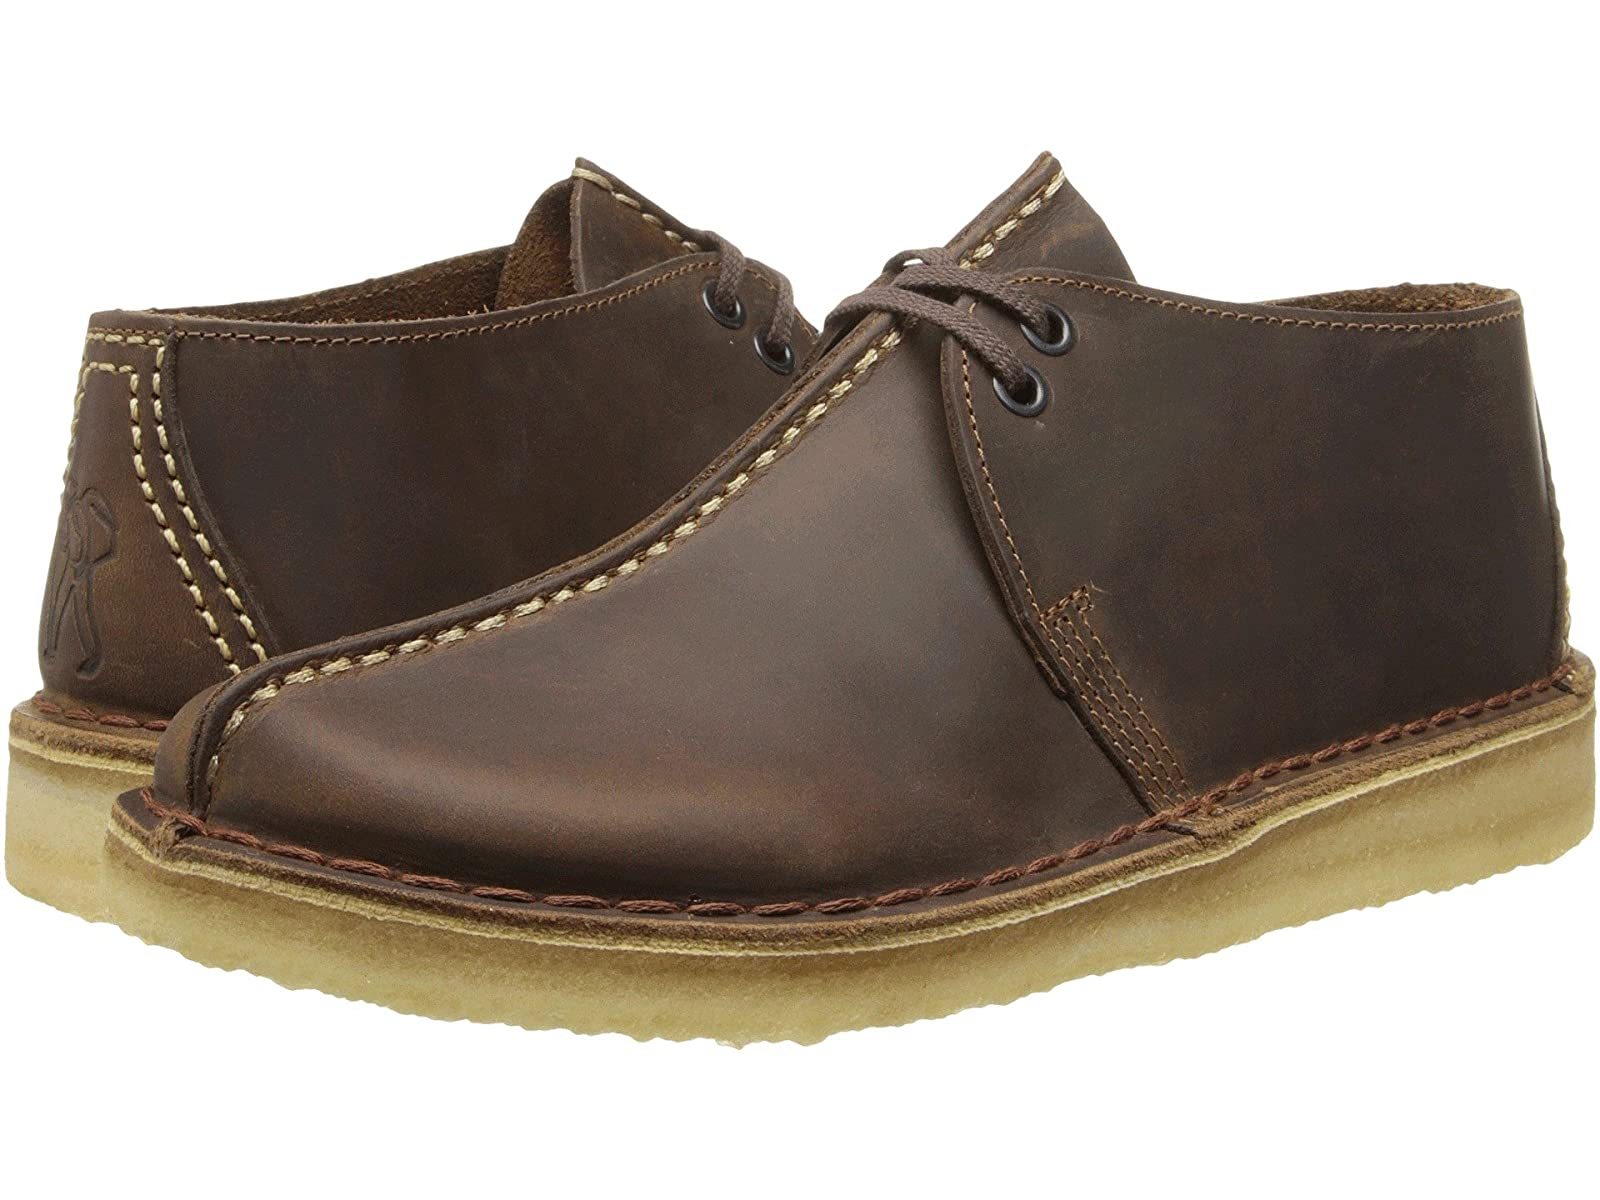 Clarks Desert TrekAffordable and distinctive shoes